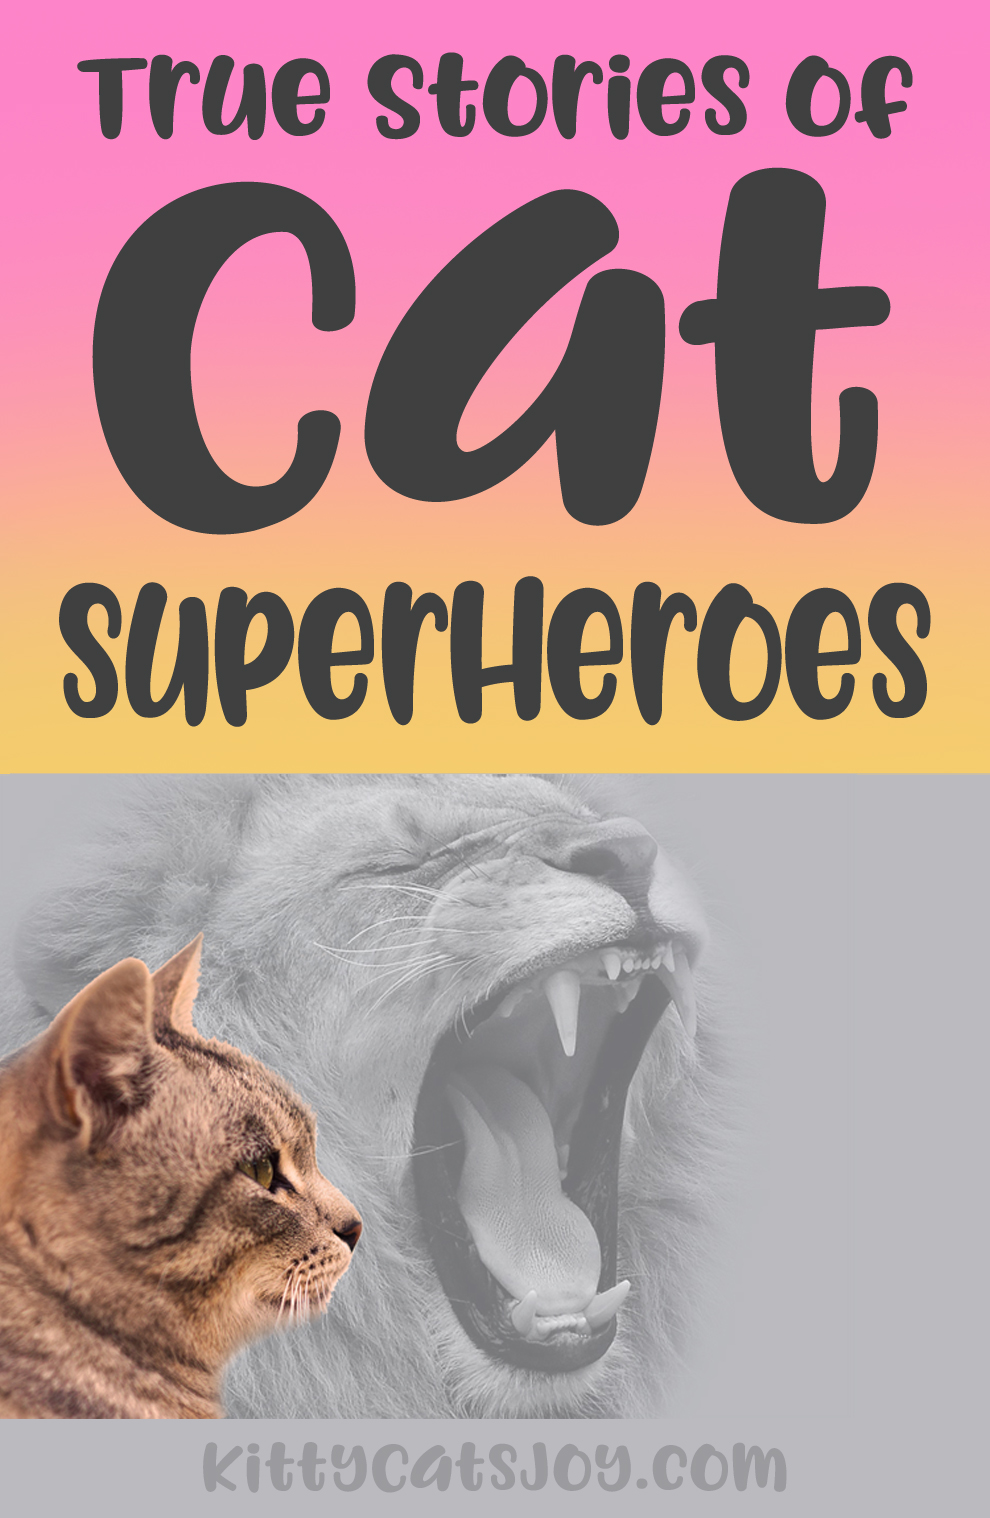 5 True Stories of When Cats Were Brave Superheroes